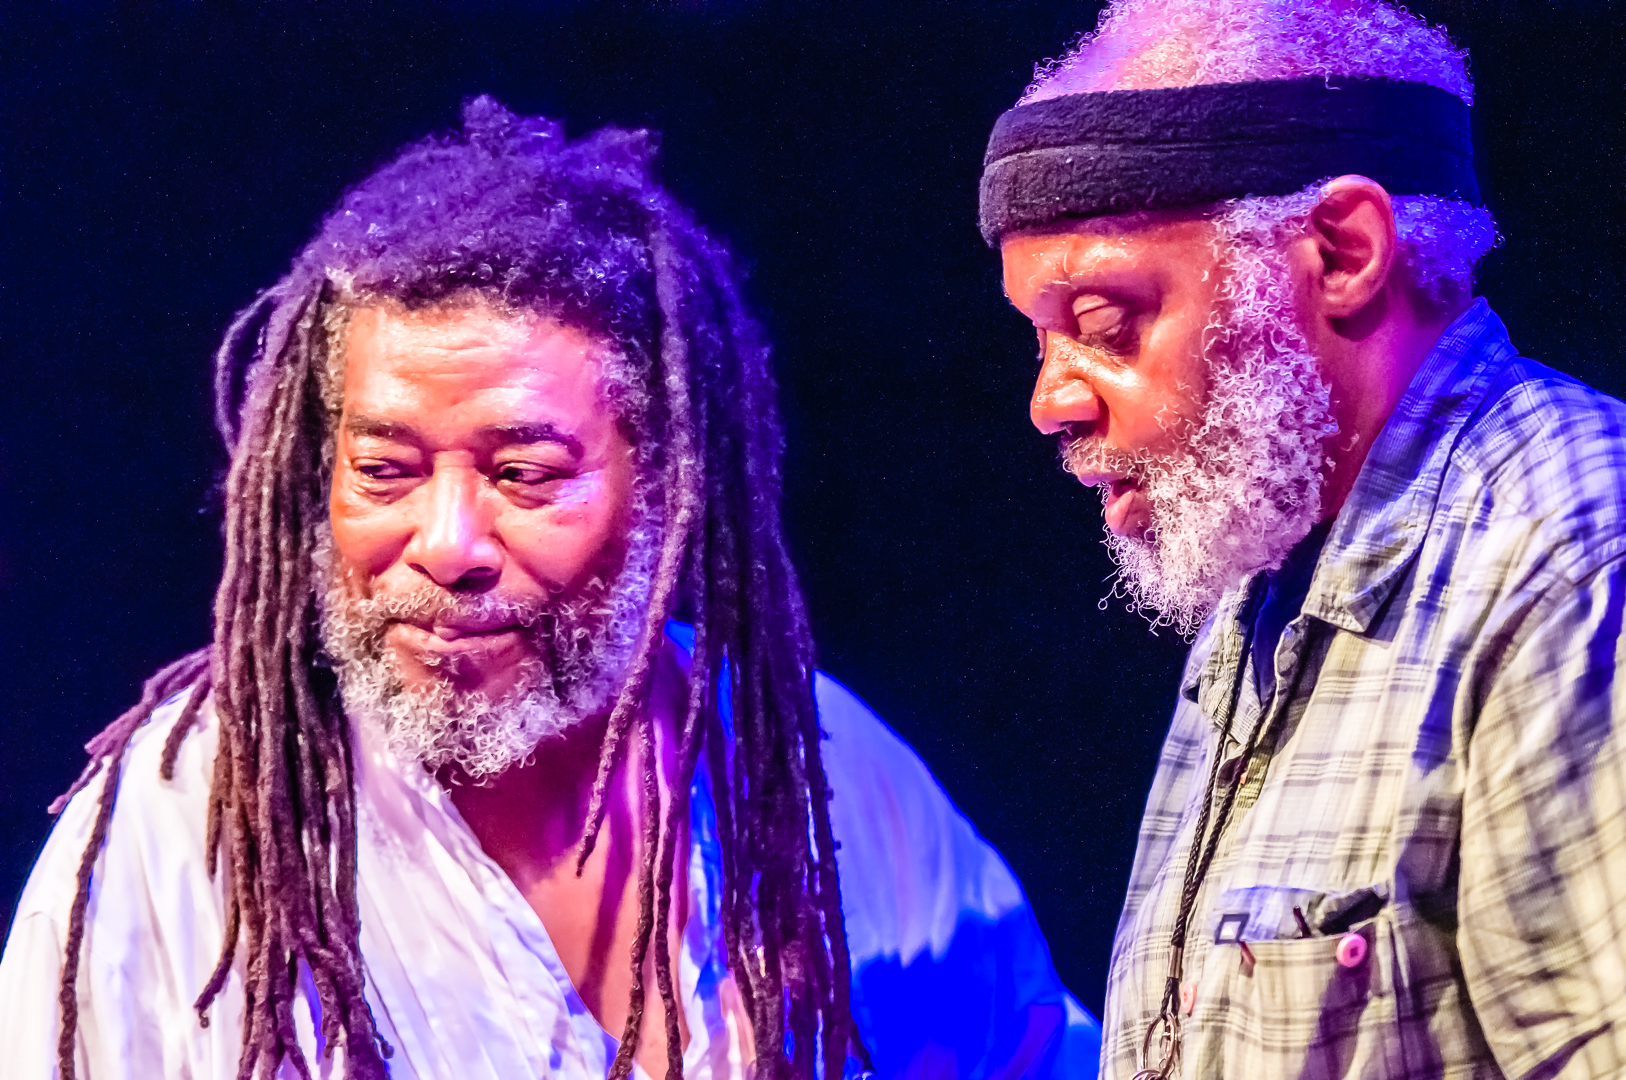 Wadada leo smith and henry grimes at the vision festival 2012